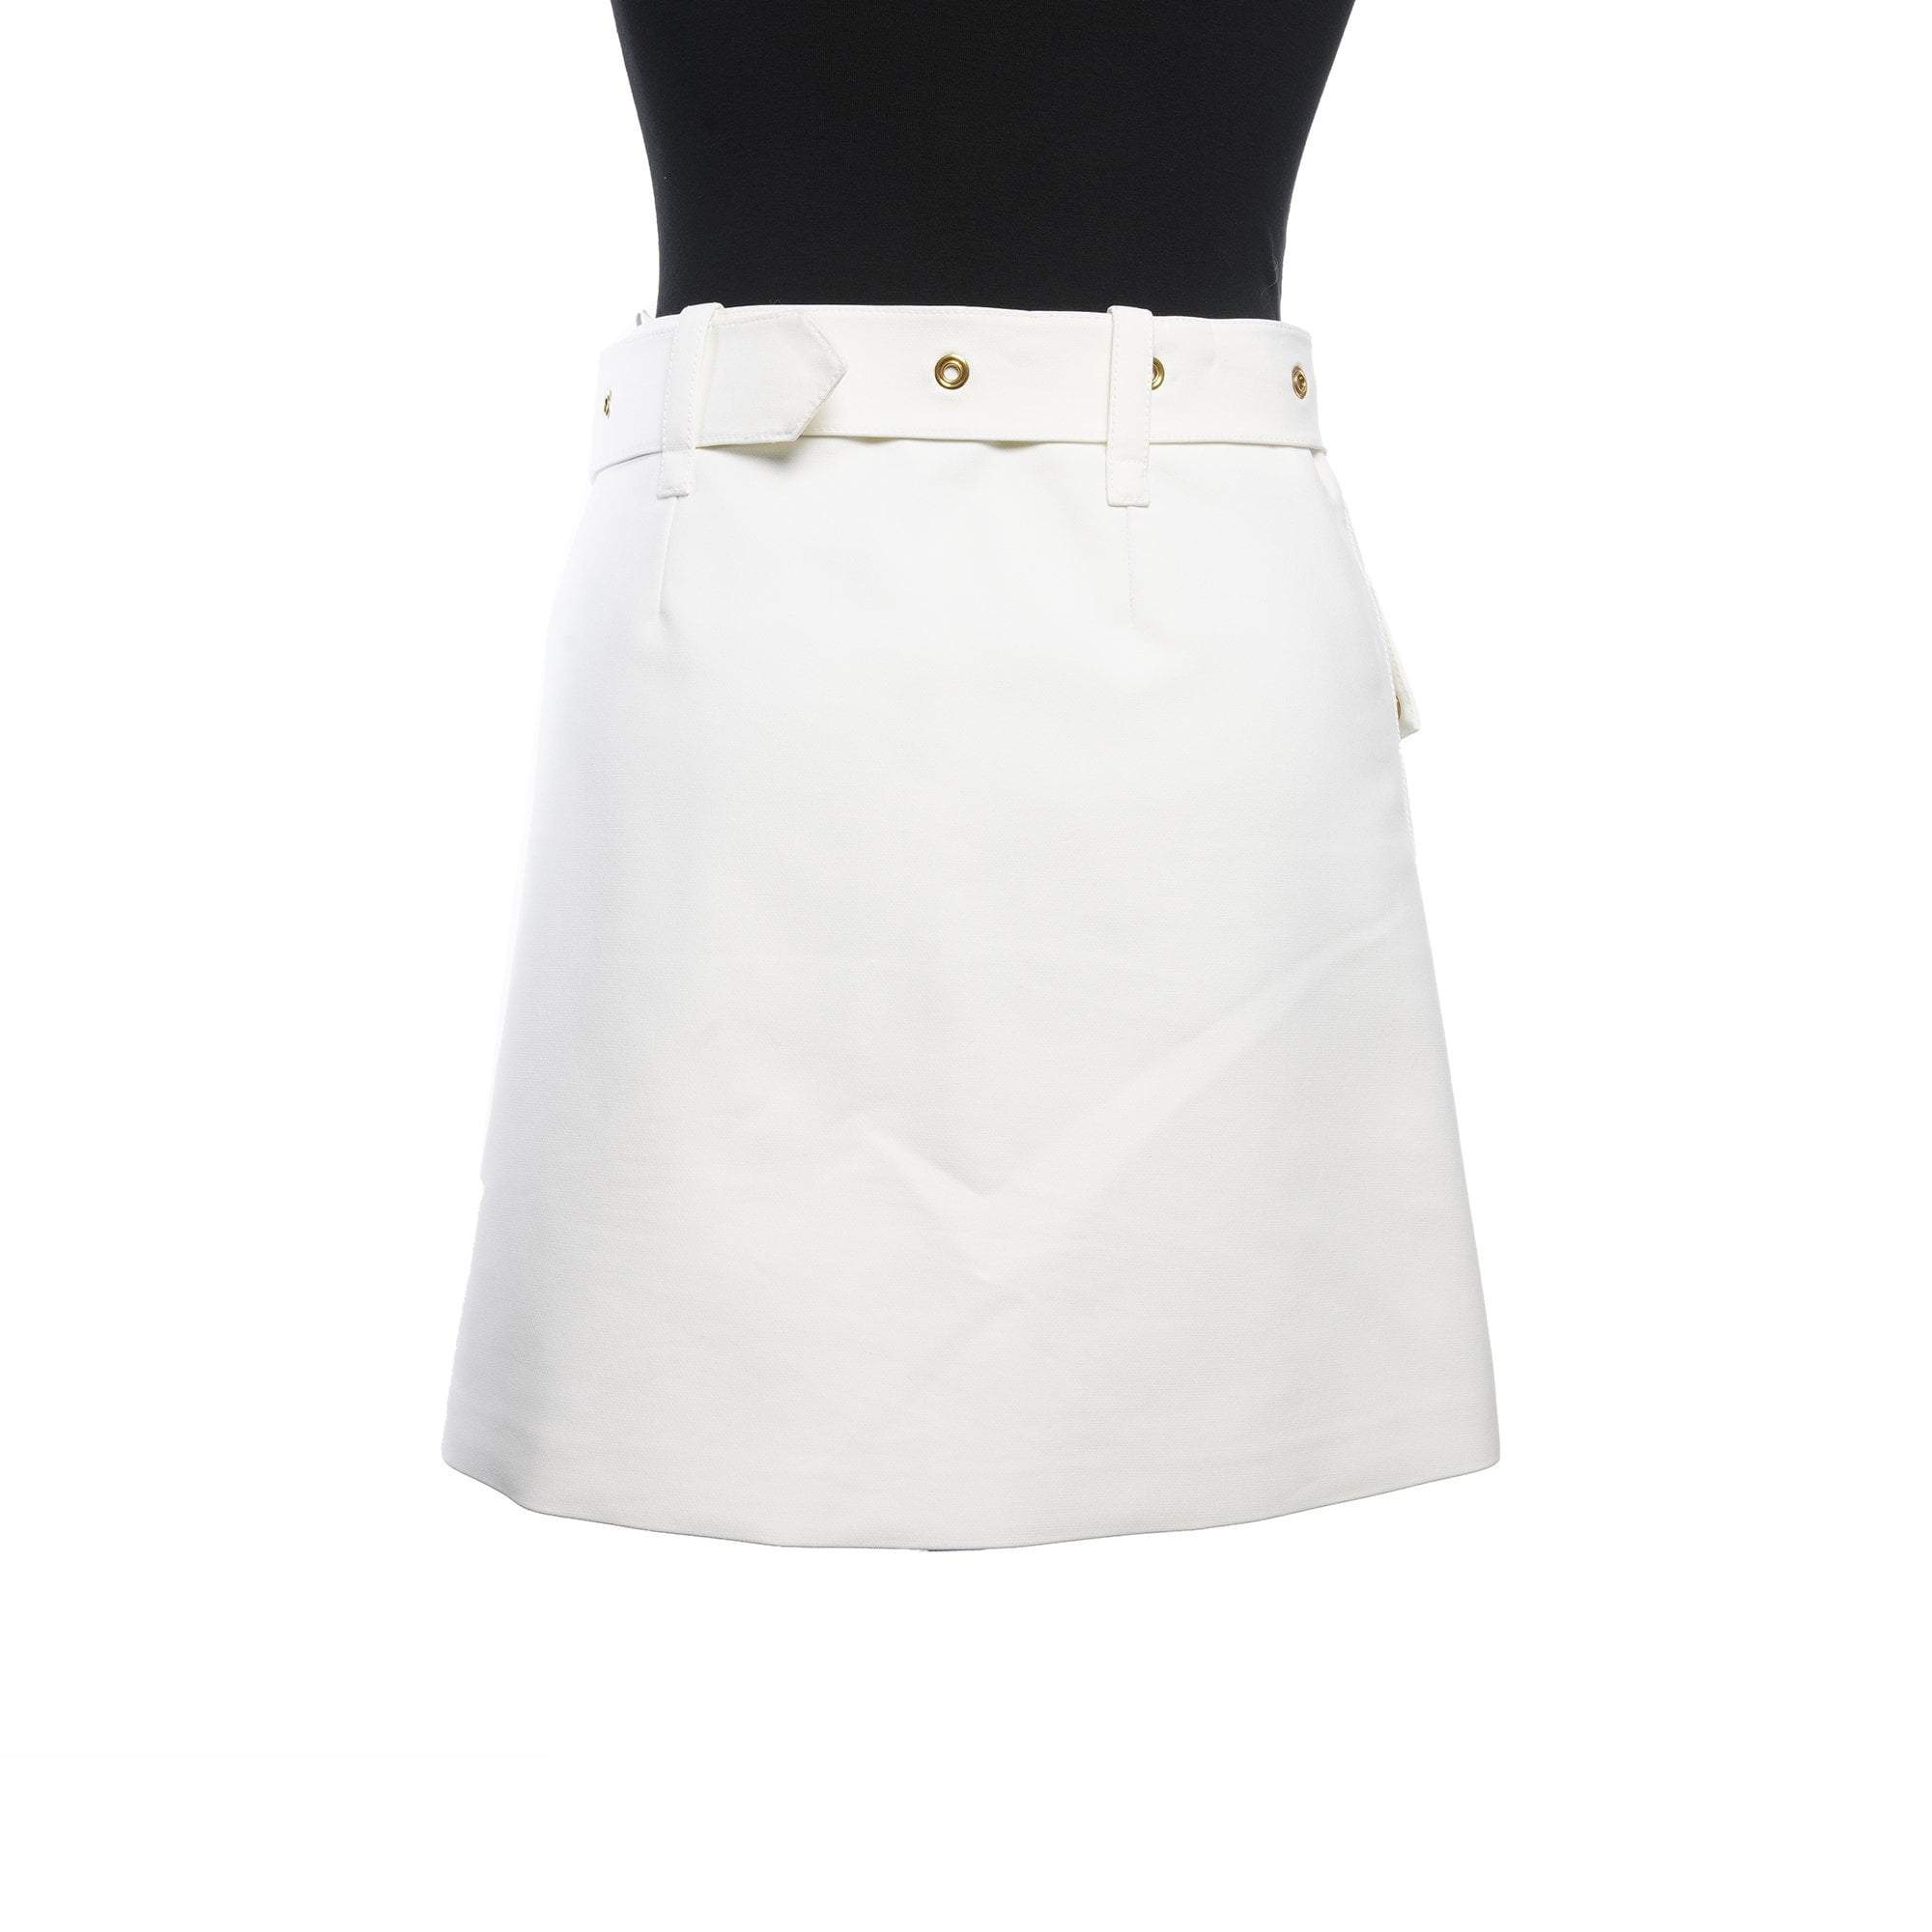 Louis Vuitton  White  Mini Skirt With Gold Buttons